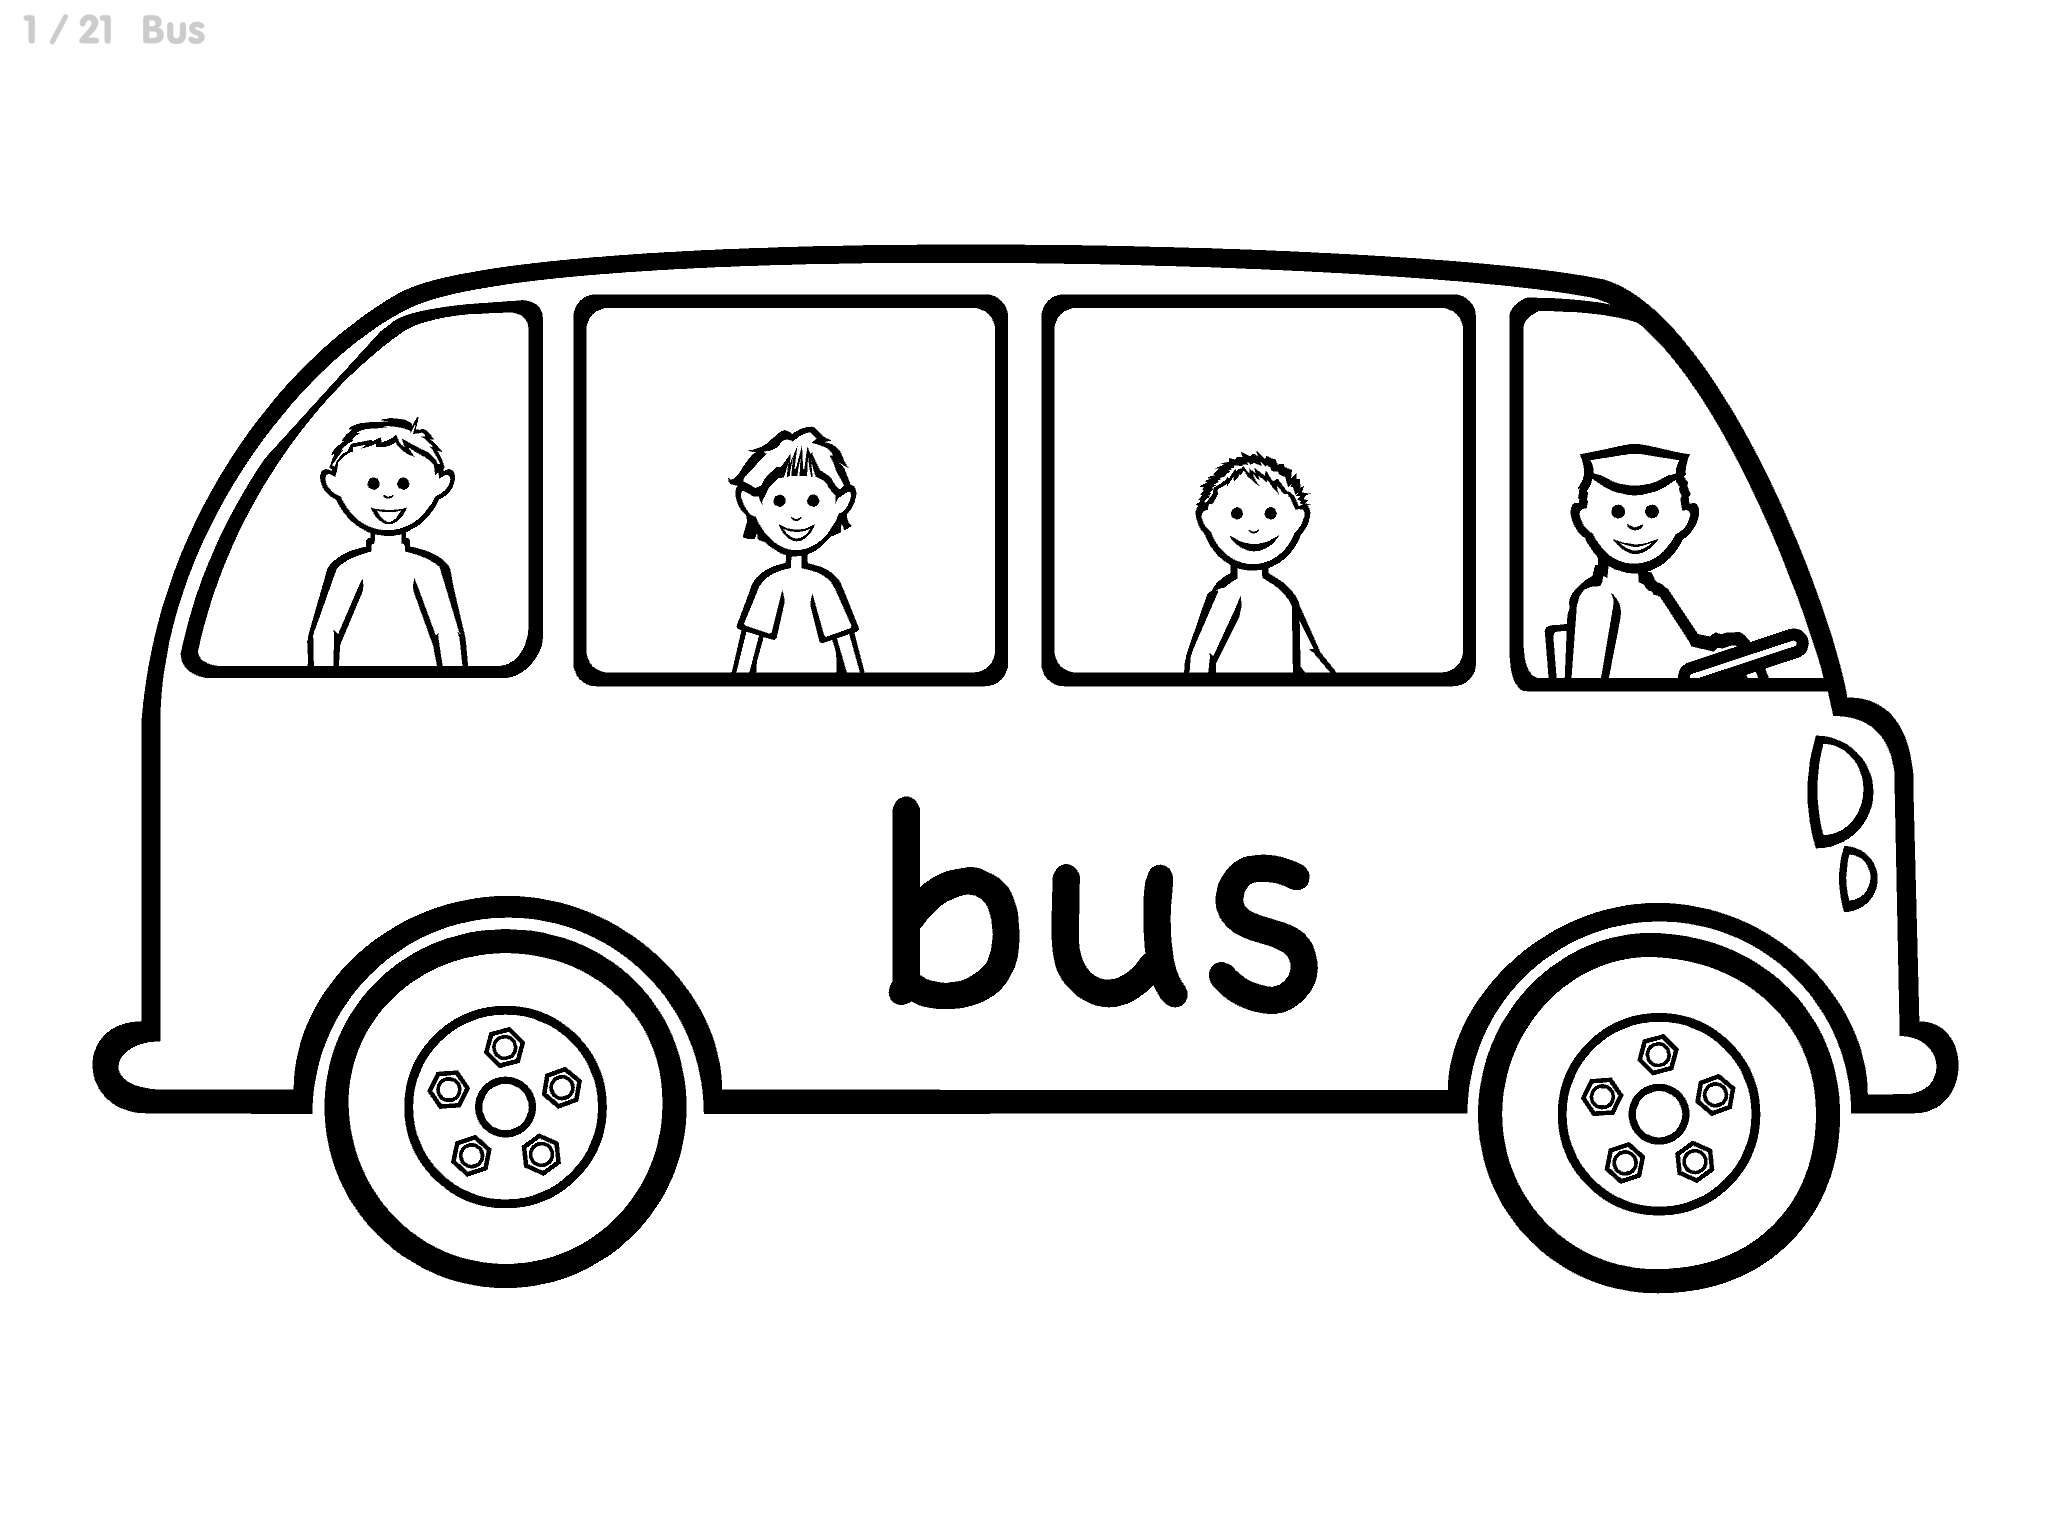 Simple Line Art image of a bus: Same image as silhouette bus with white background, but bus and people are white with black outlines.